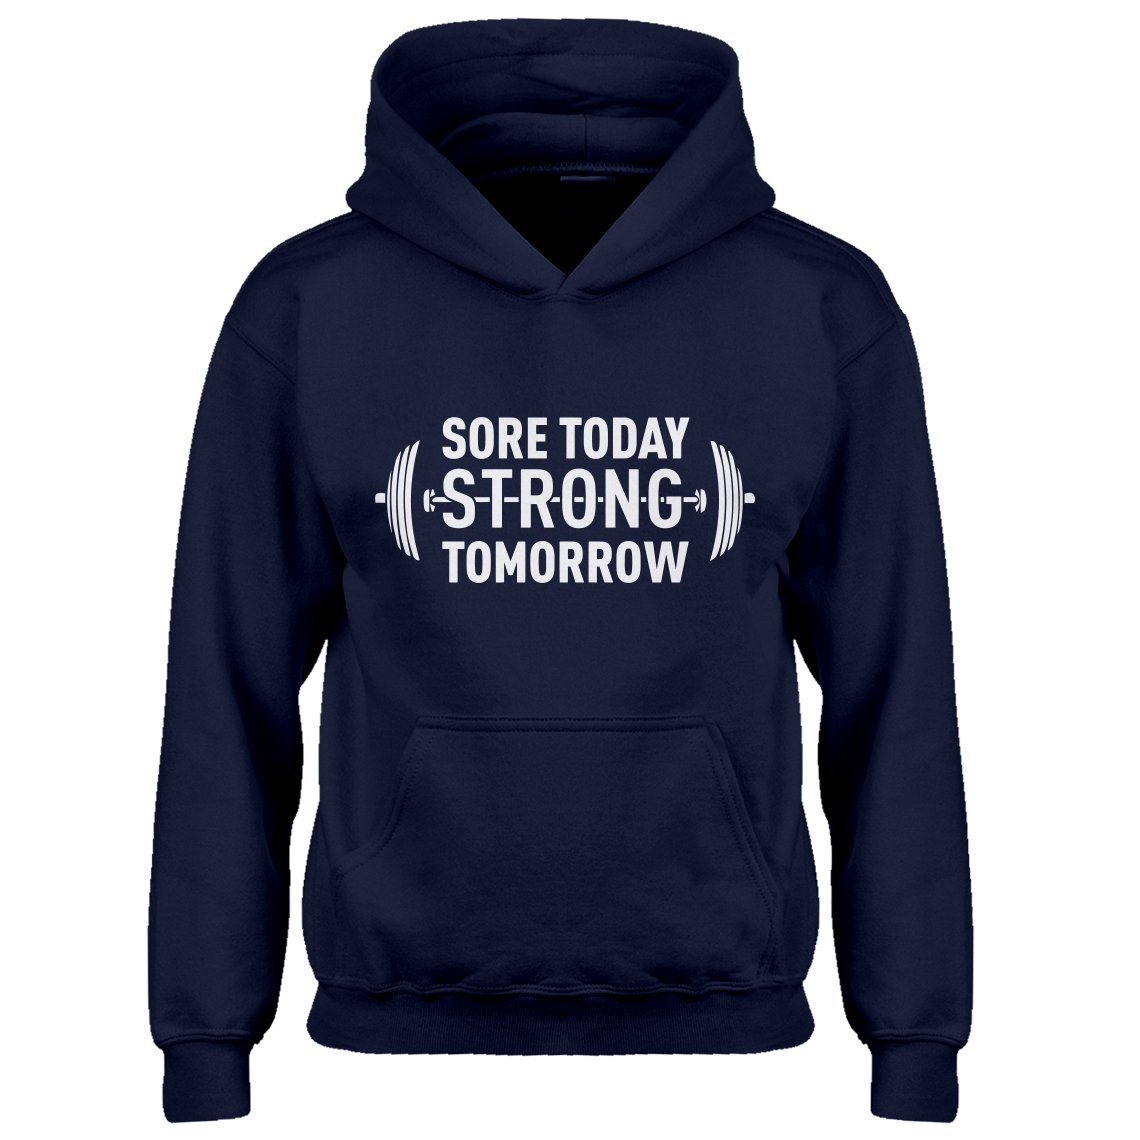 Indica Plateau Kids Hoodie Sore Today Strong Tomorrow Small Navy Blue Hoodie by Indica Plateau